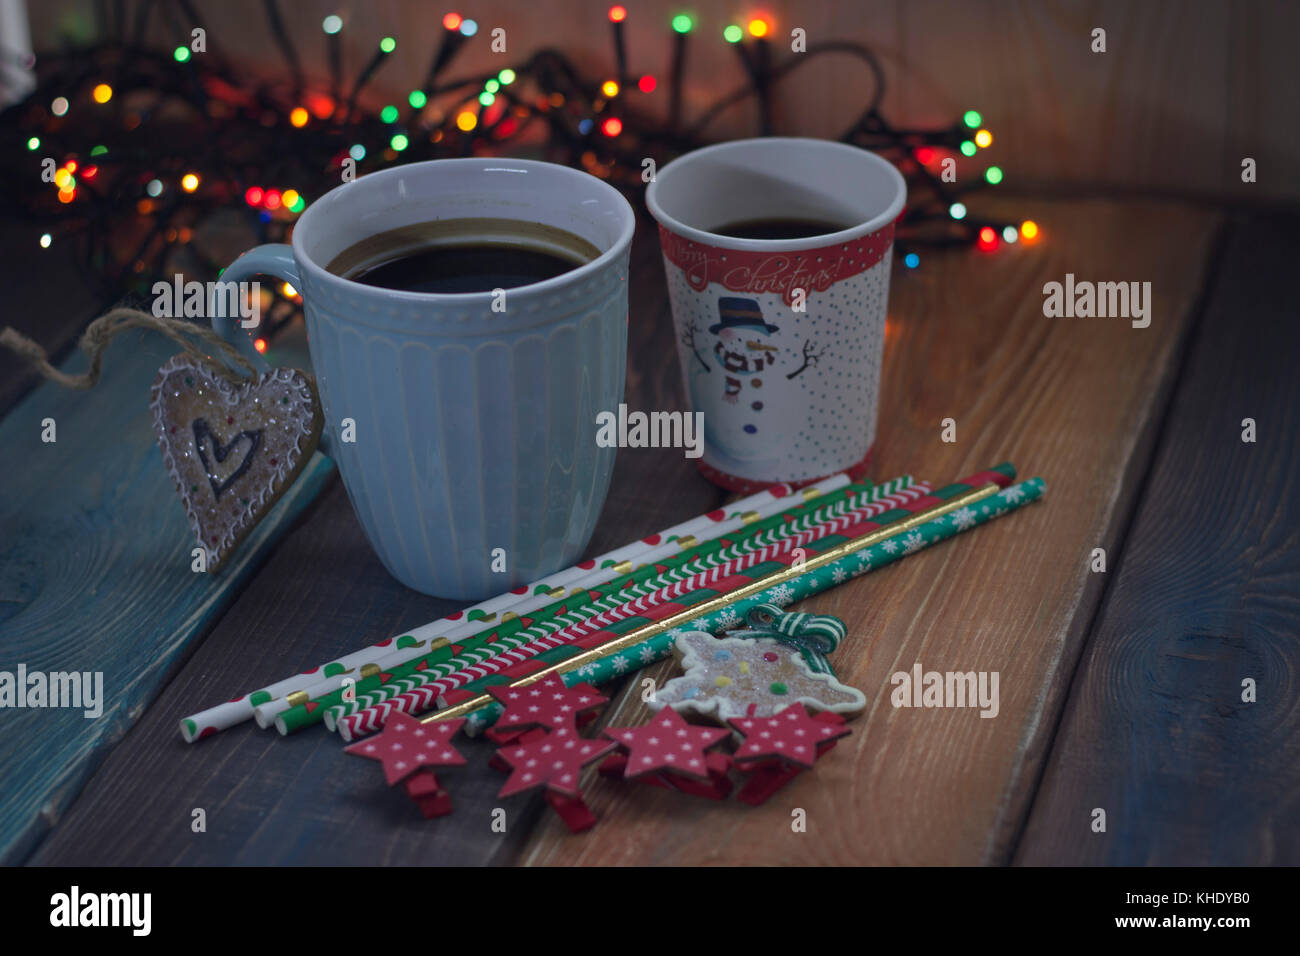 Blue print cafe stock photos blue print cafe stock images alamy cup and glass on the christmas table stock image malvernweather Gallery